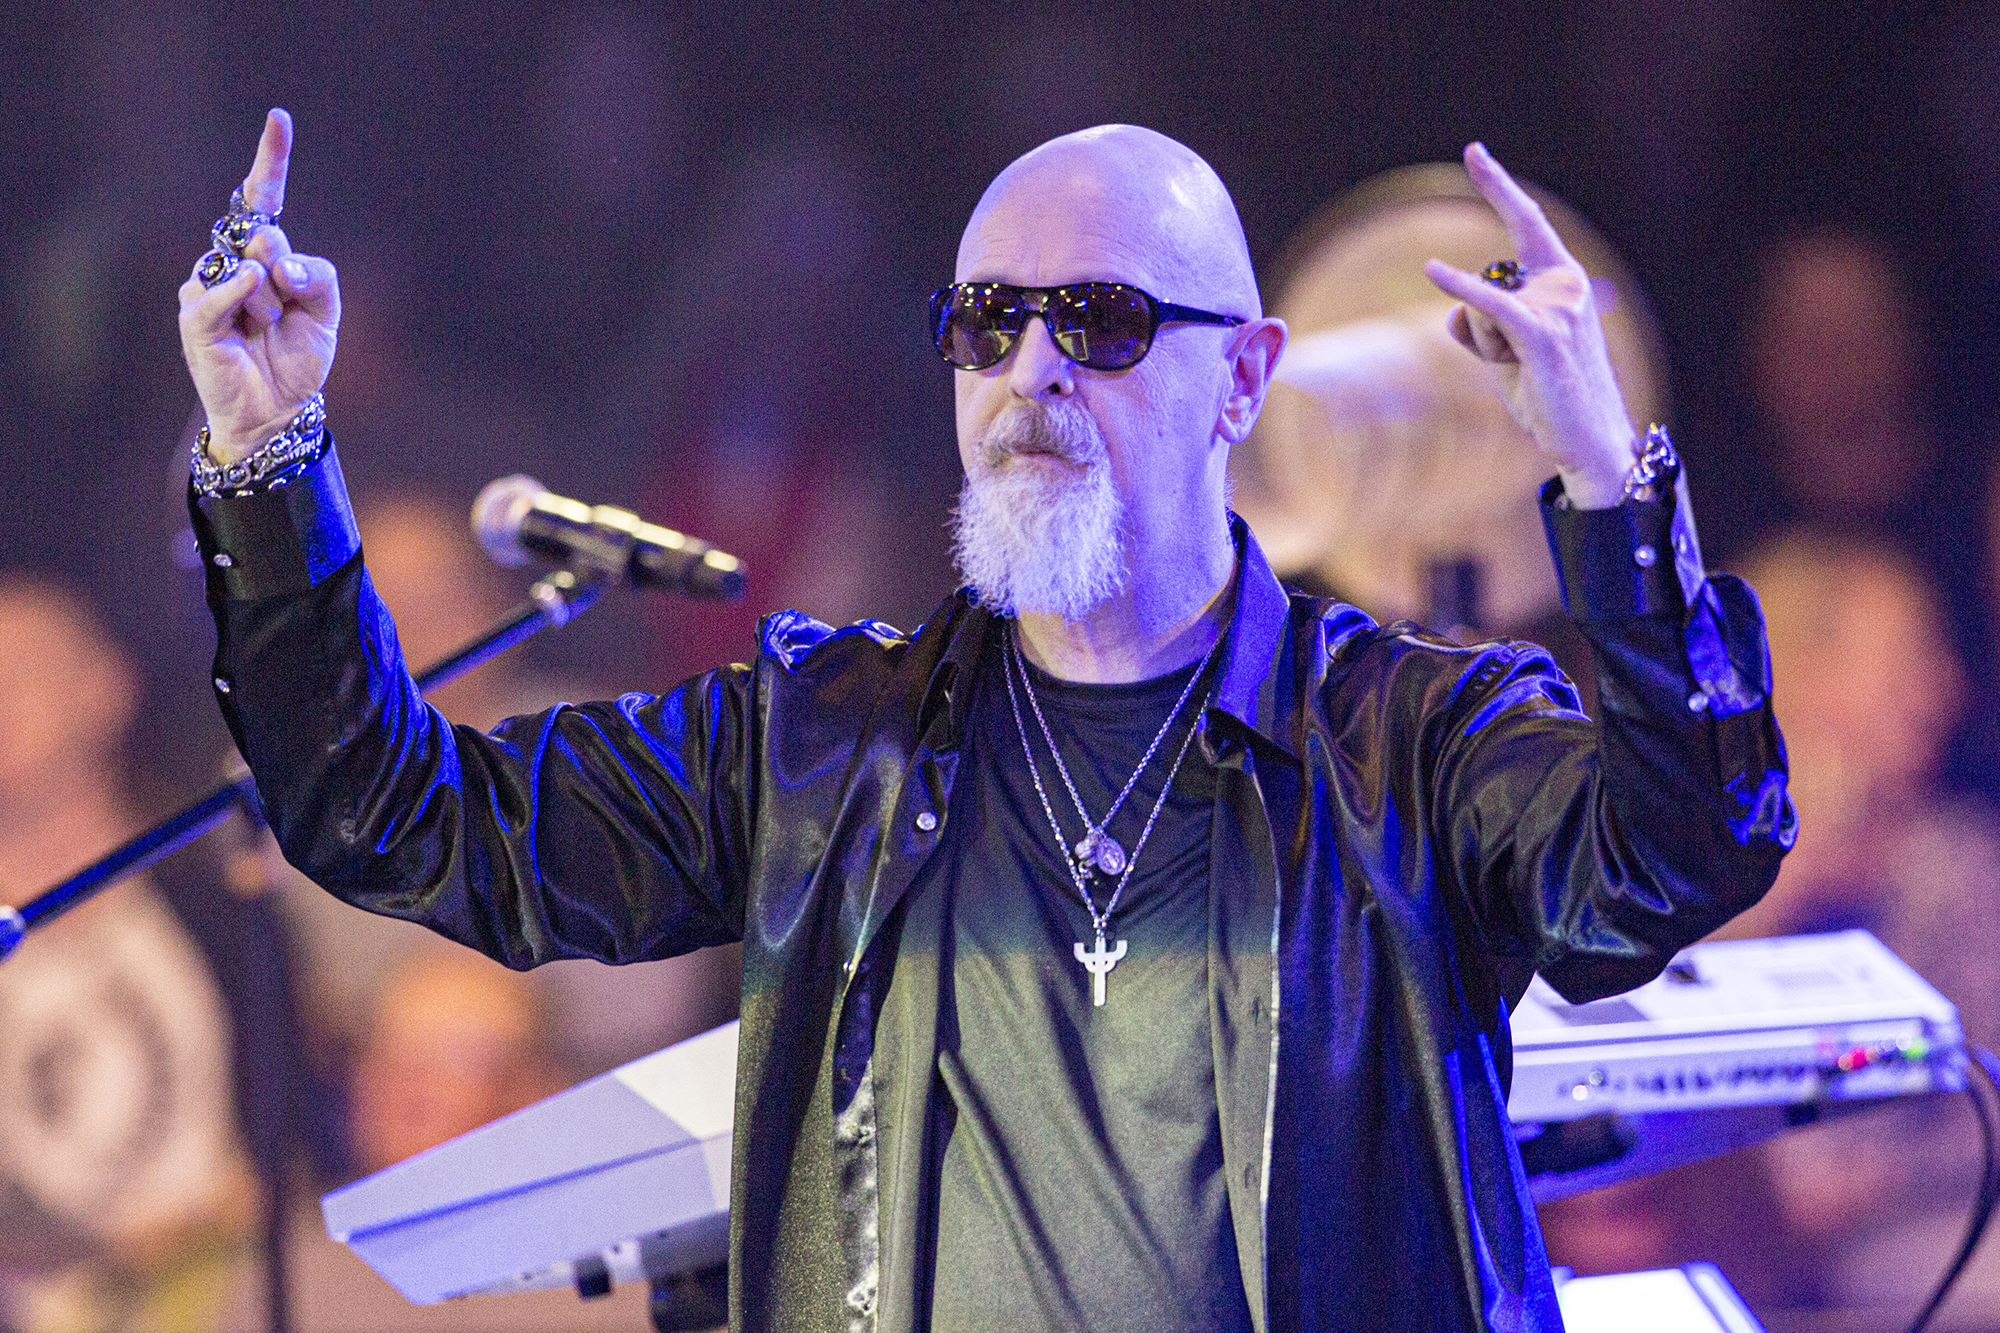 Judas Priest's Rob Halford on public-sex arrest: 'I've f–ked up!'